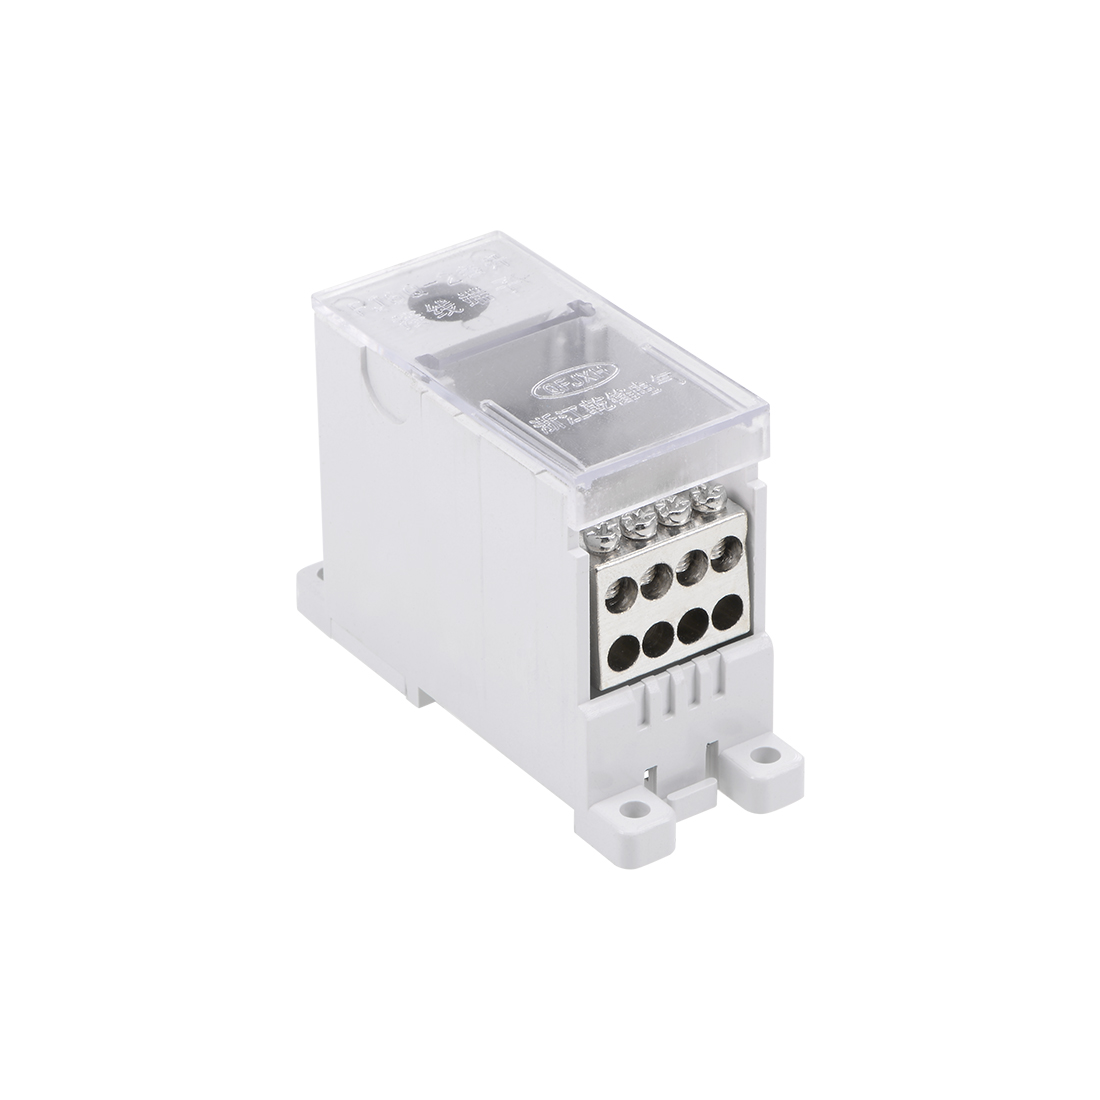 1 Input 8 Output DIN Rail Terminal Blocks Connectors Distribution Block